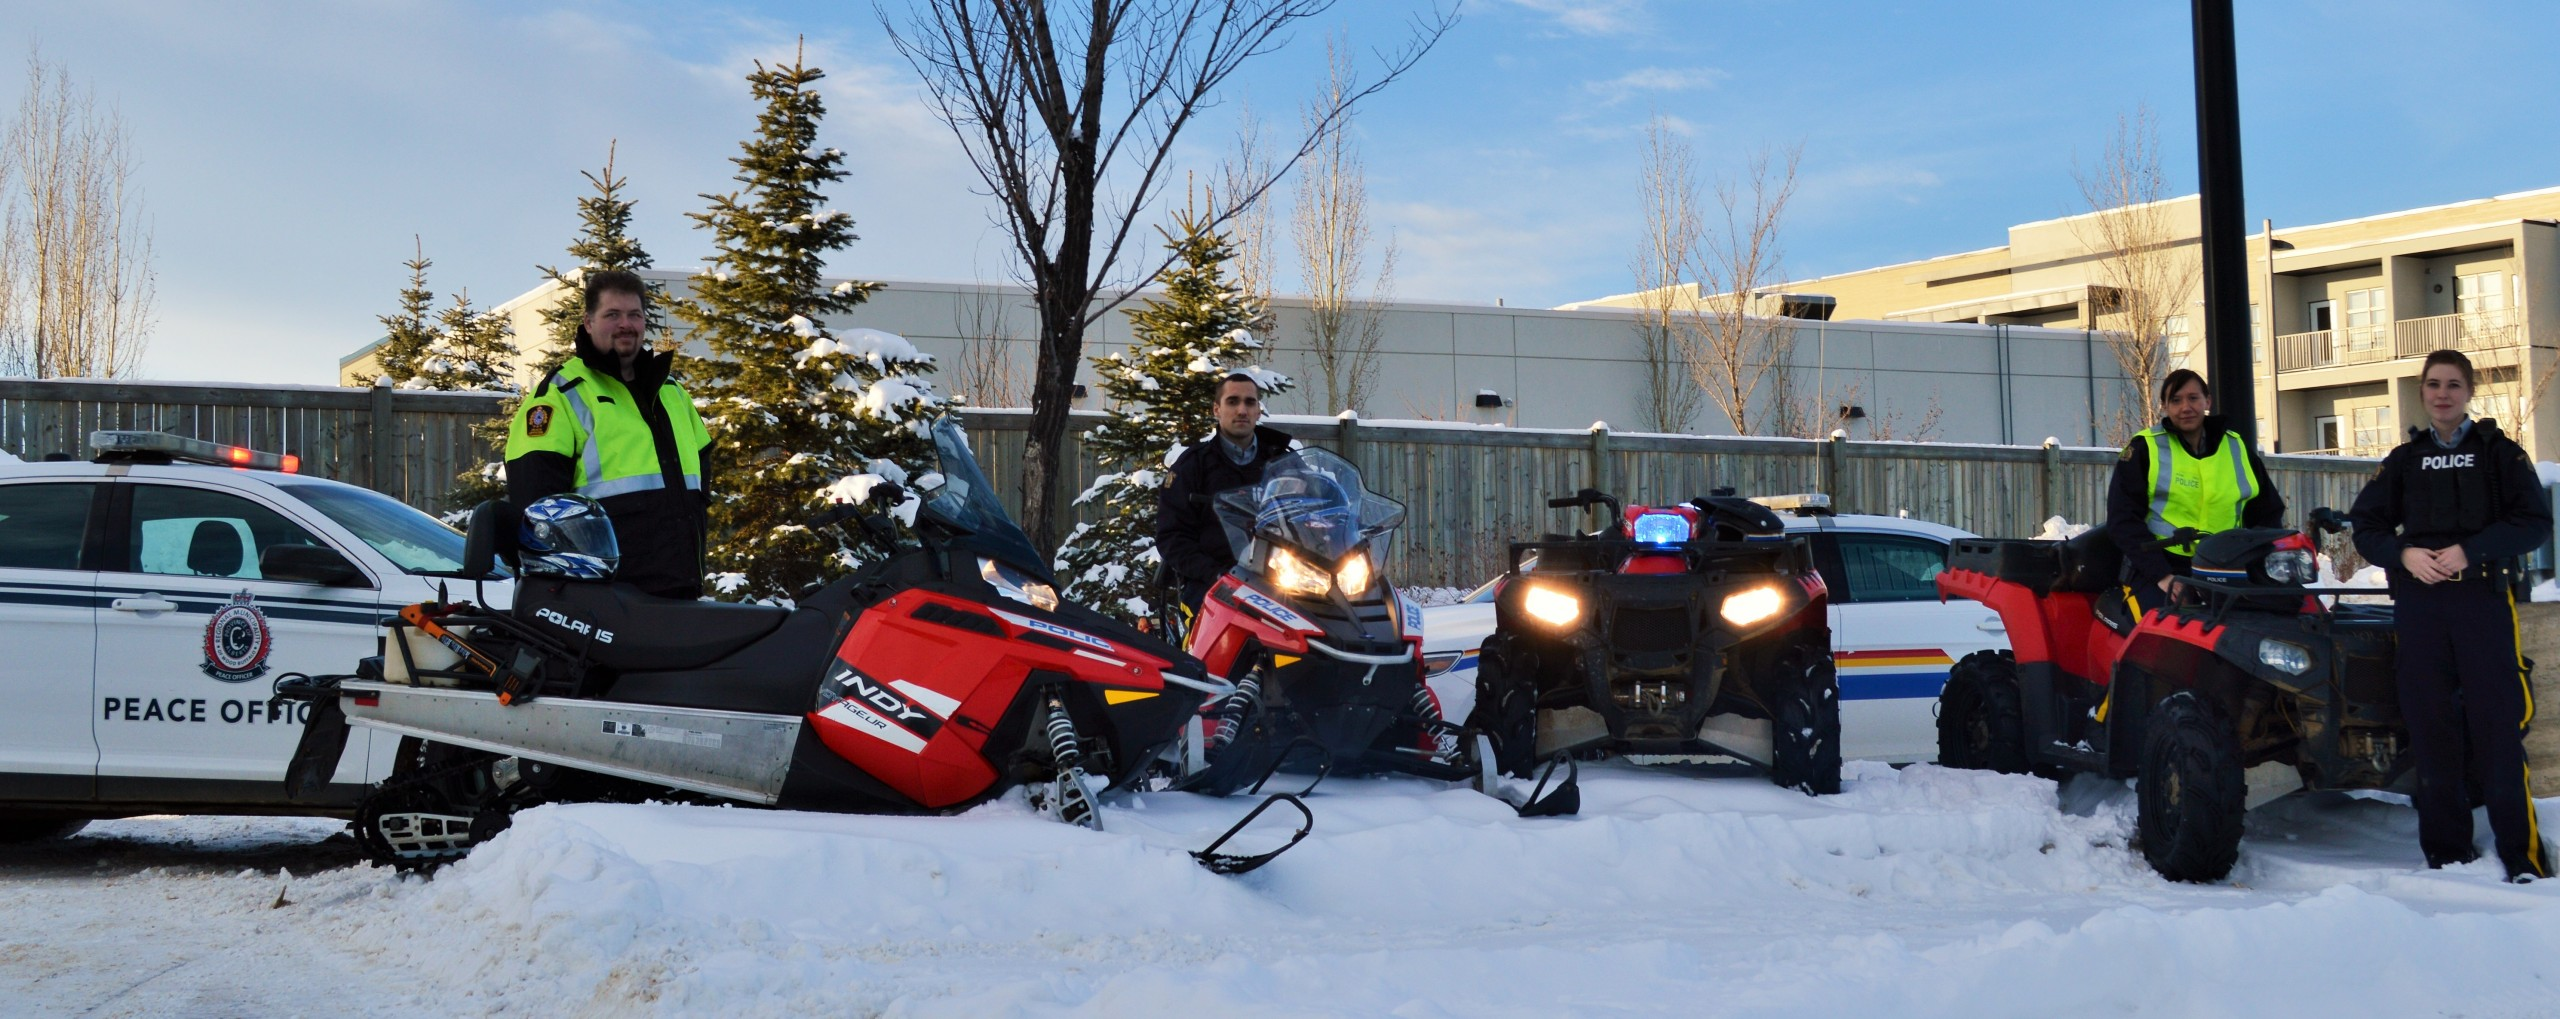 Snowmobile use within the RWMB